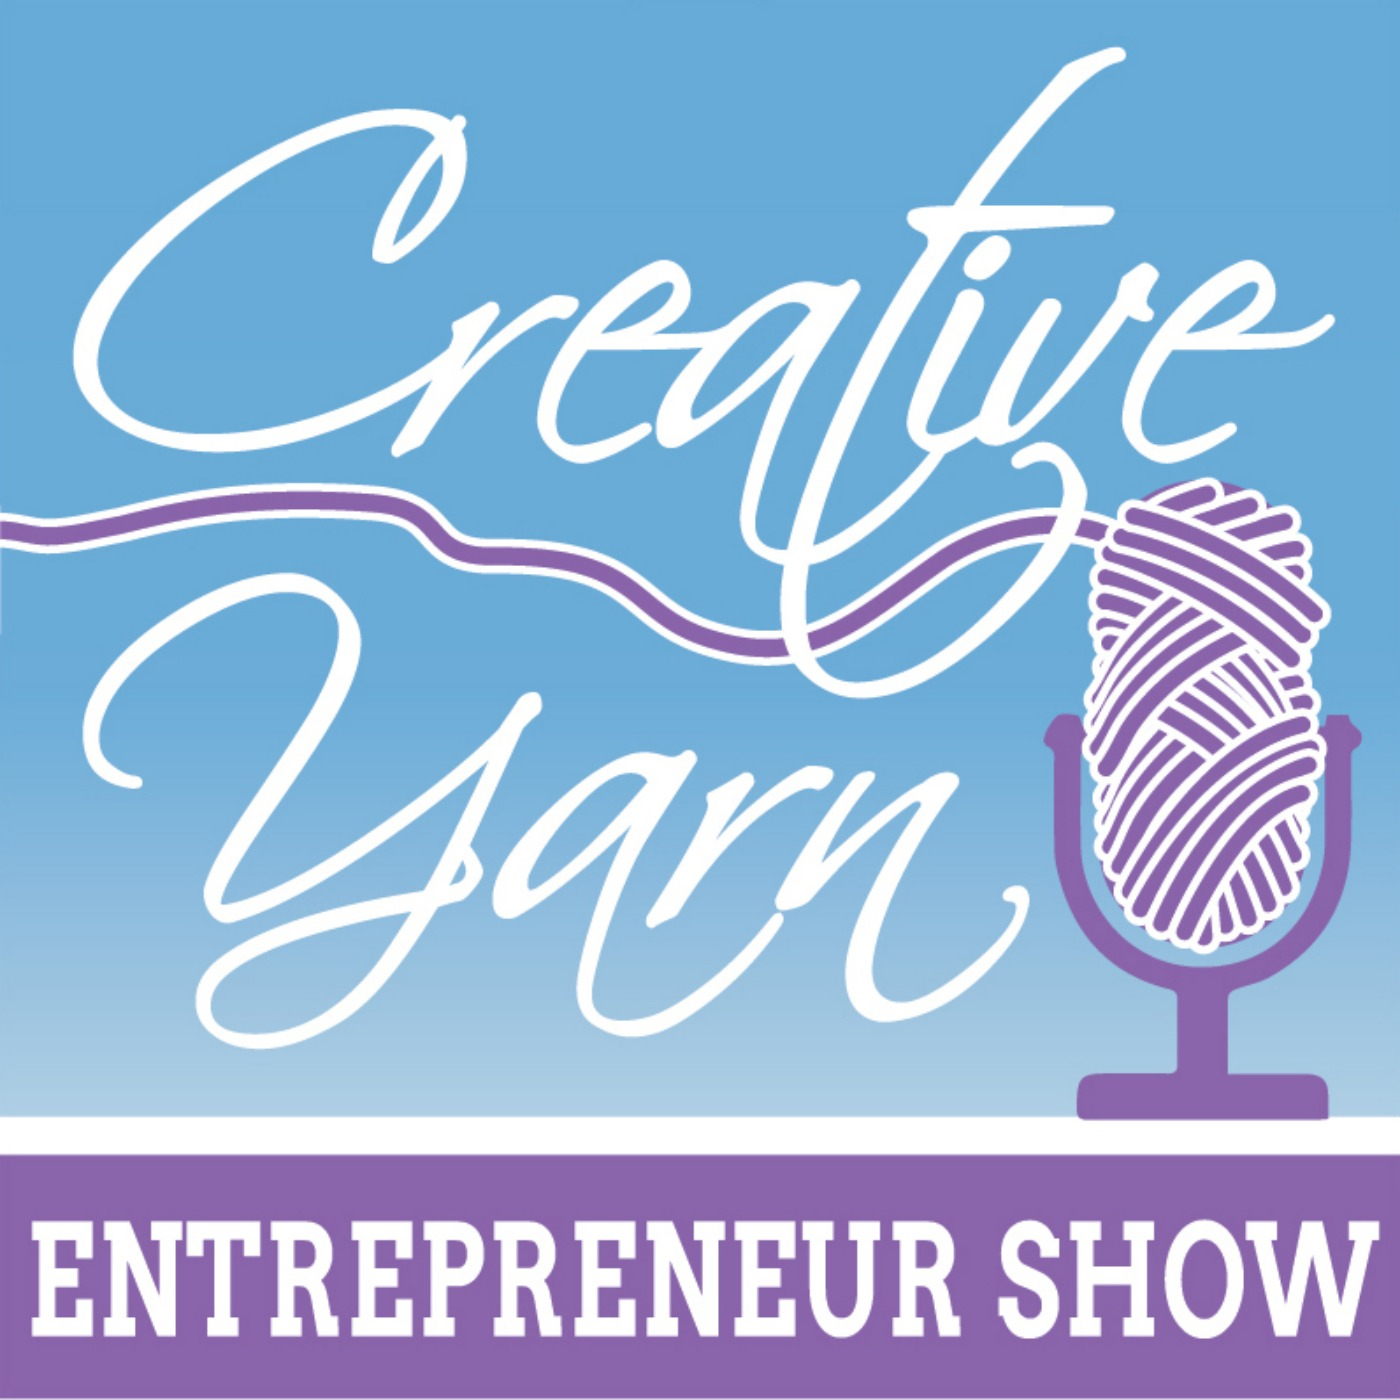 Episode 30: Going Beyond the Basics with Pinterest for Your Yarn-Related Business with Cynthia Sanchez - The Creative Yarn Entrepreneur Show